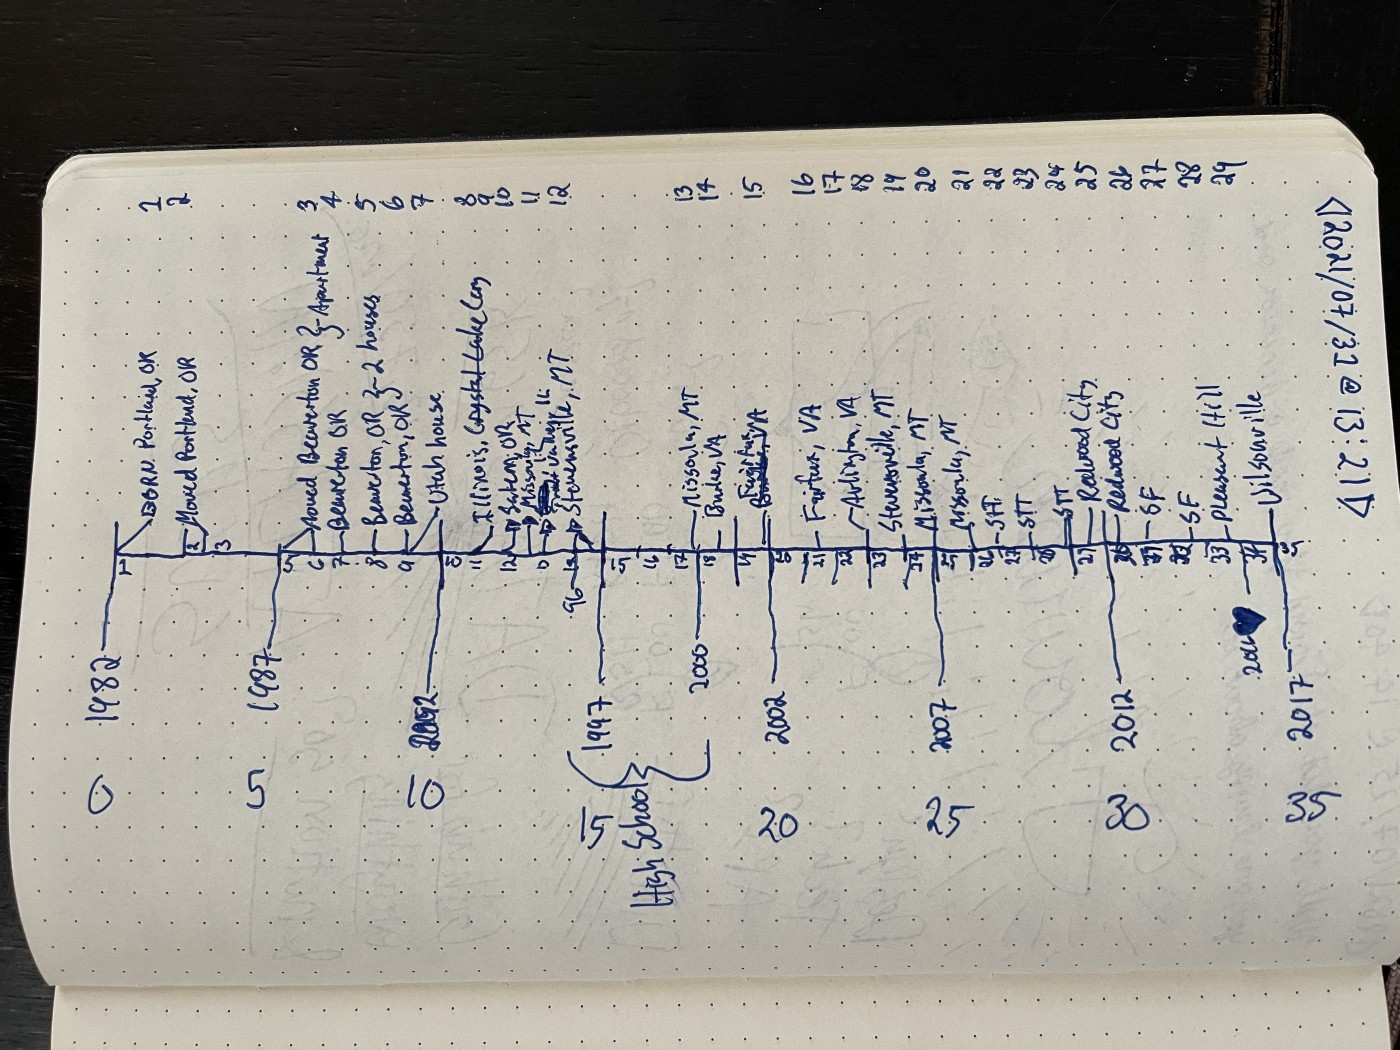 Handwritten timeline of where the author has lived in a notebook.